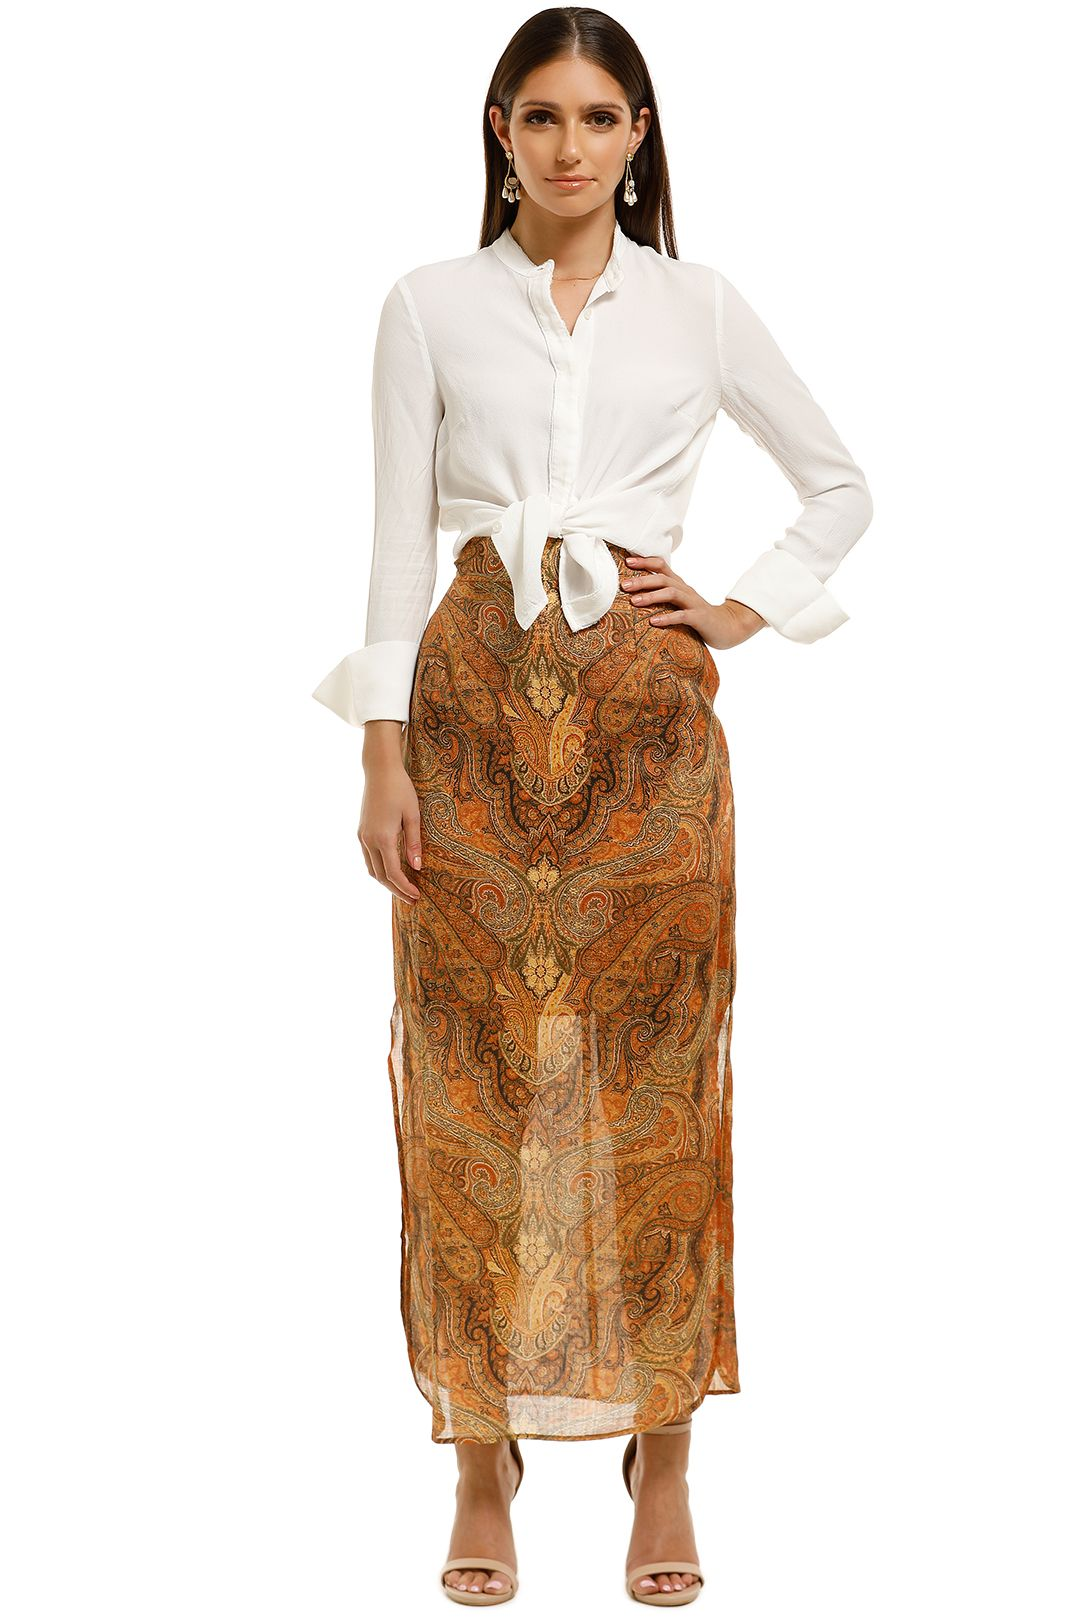 Ministry of Style - Rhapsody Skirt - Brown - Front